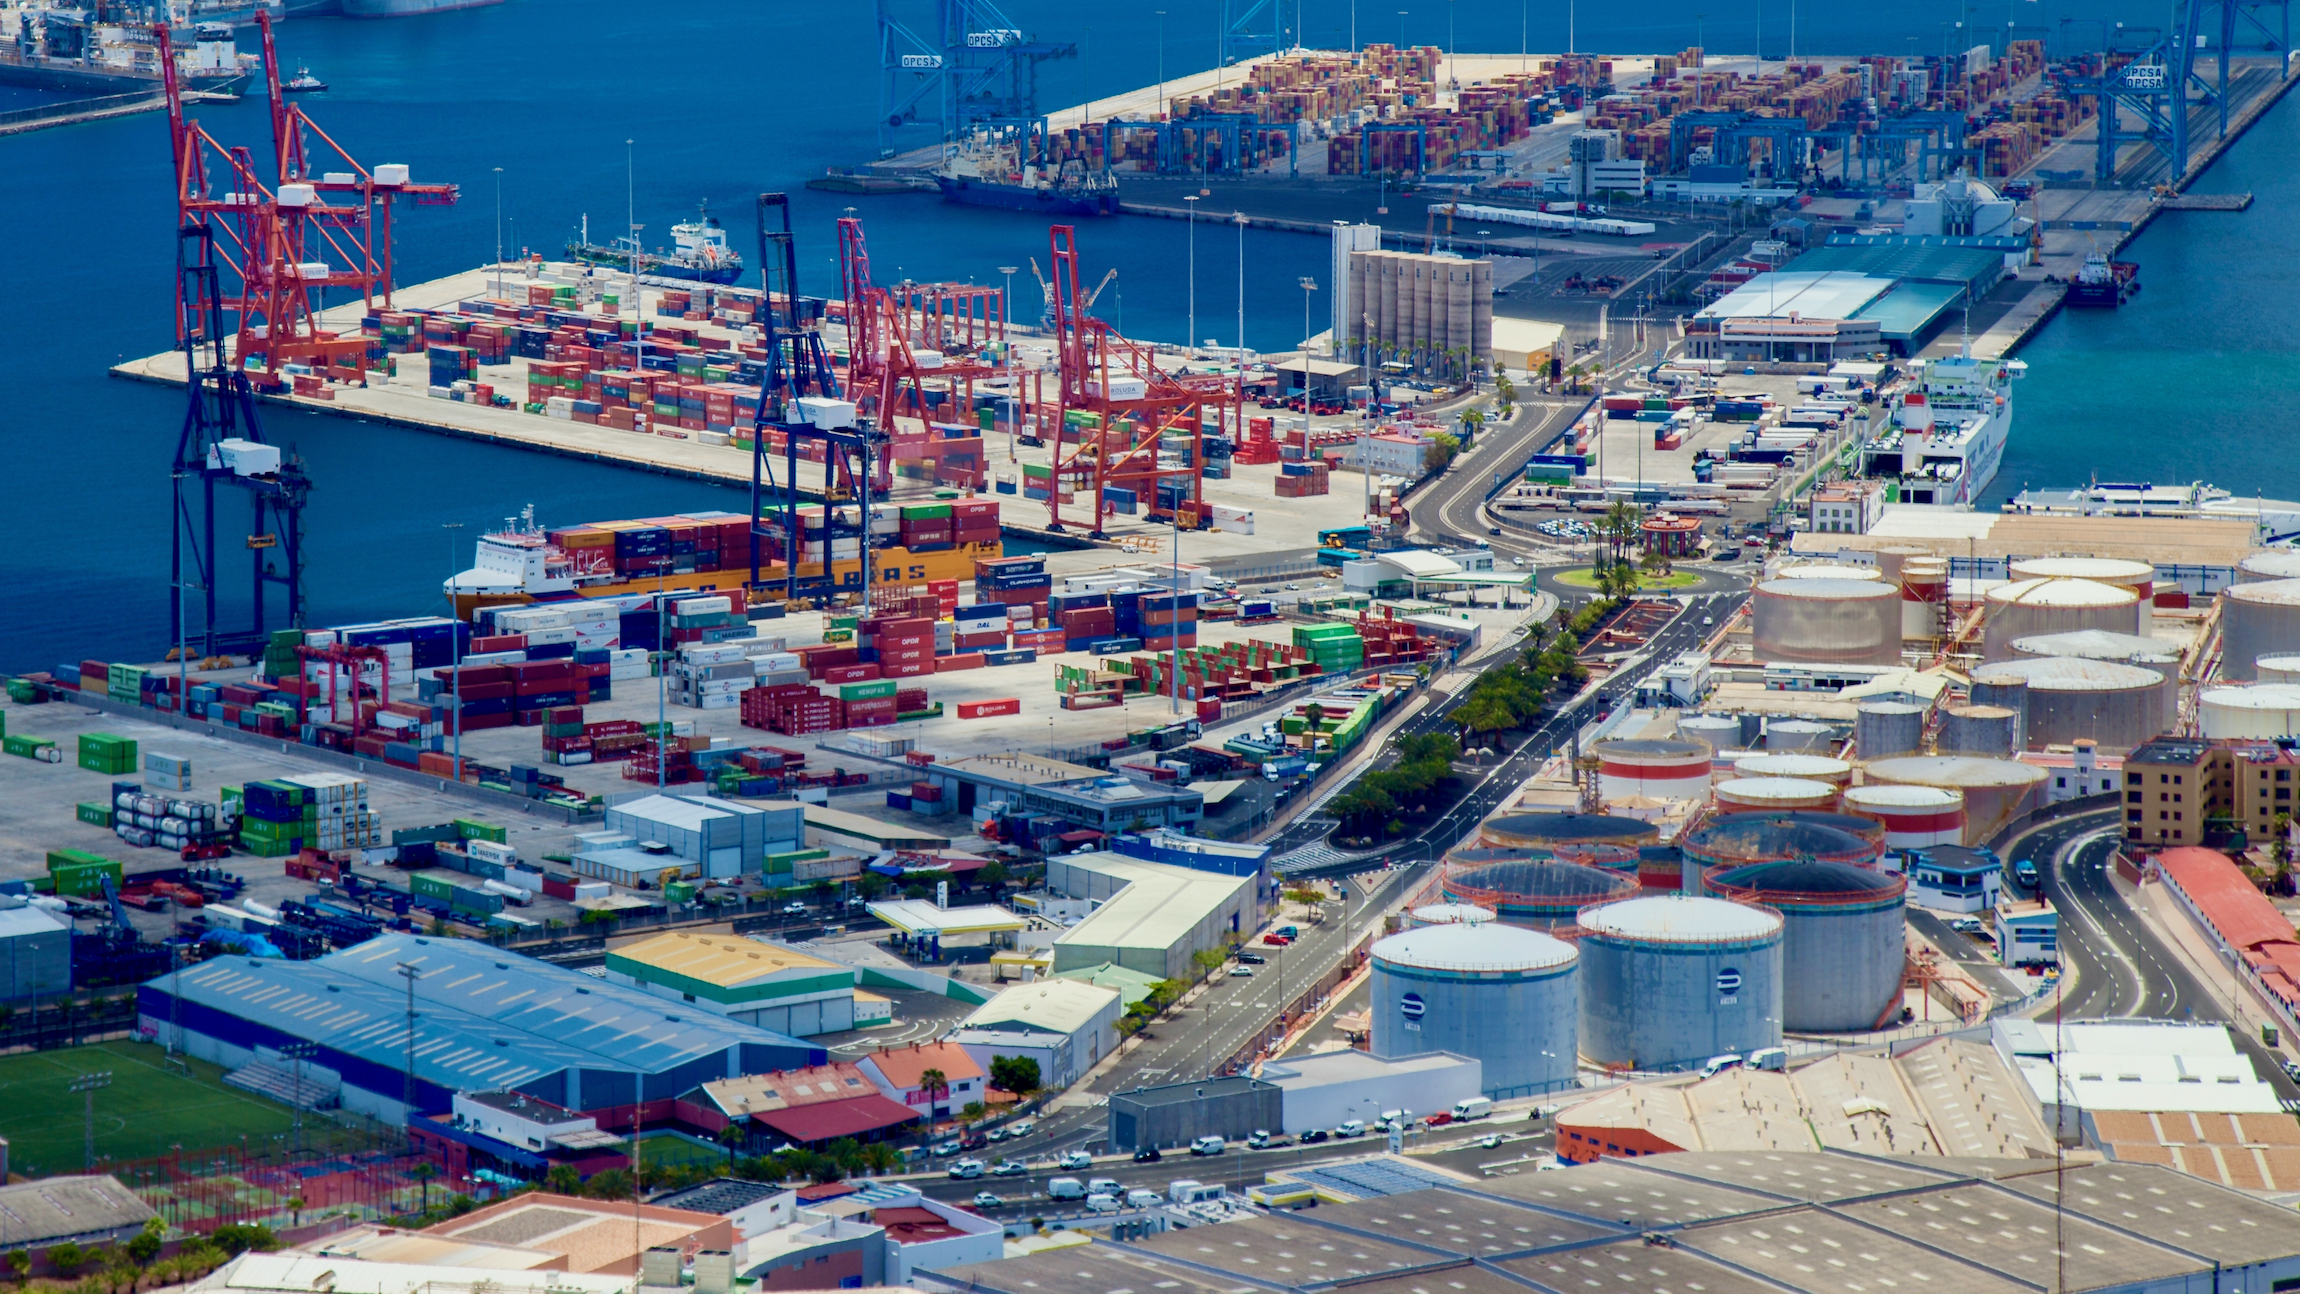 An aerial view of the Port of Las Palmas, which includes Petrologis Canarias, a company targeted in a ransomware attack.